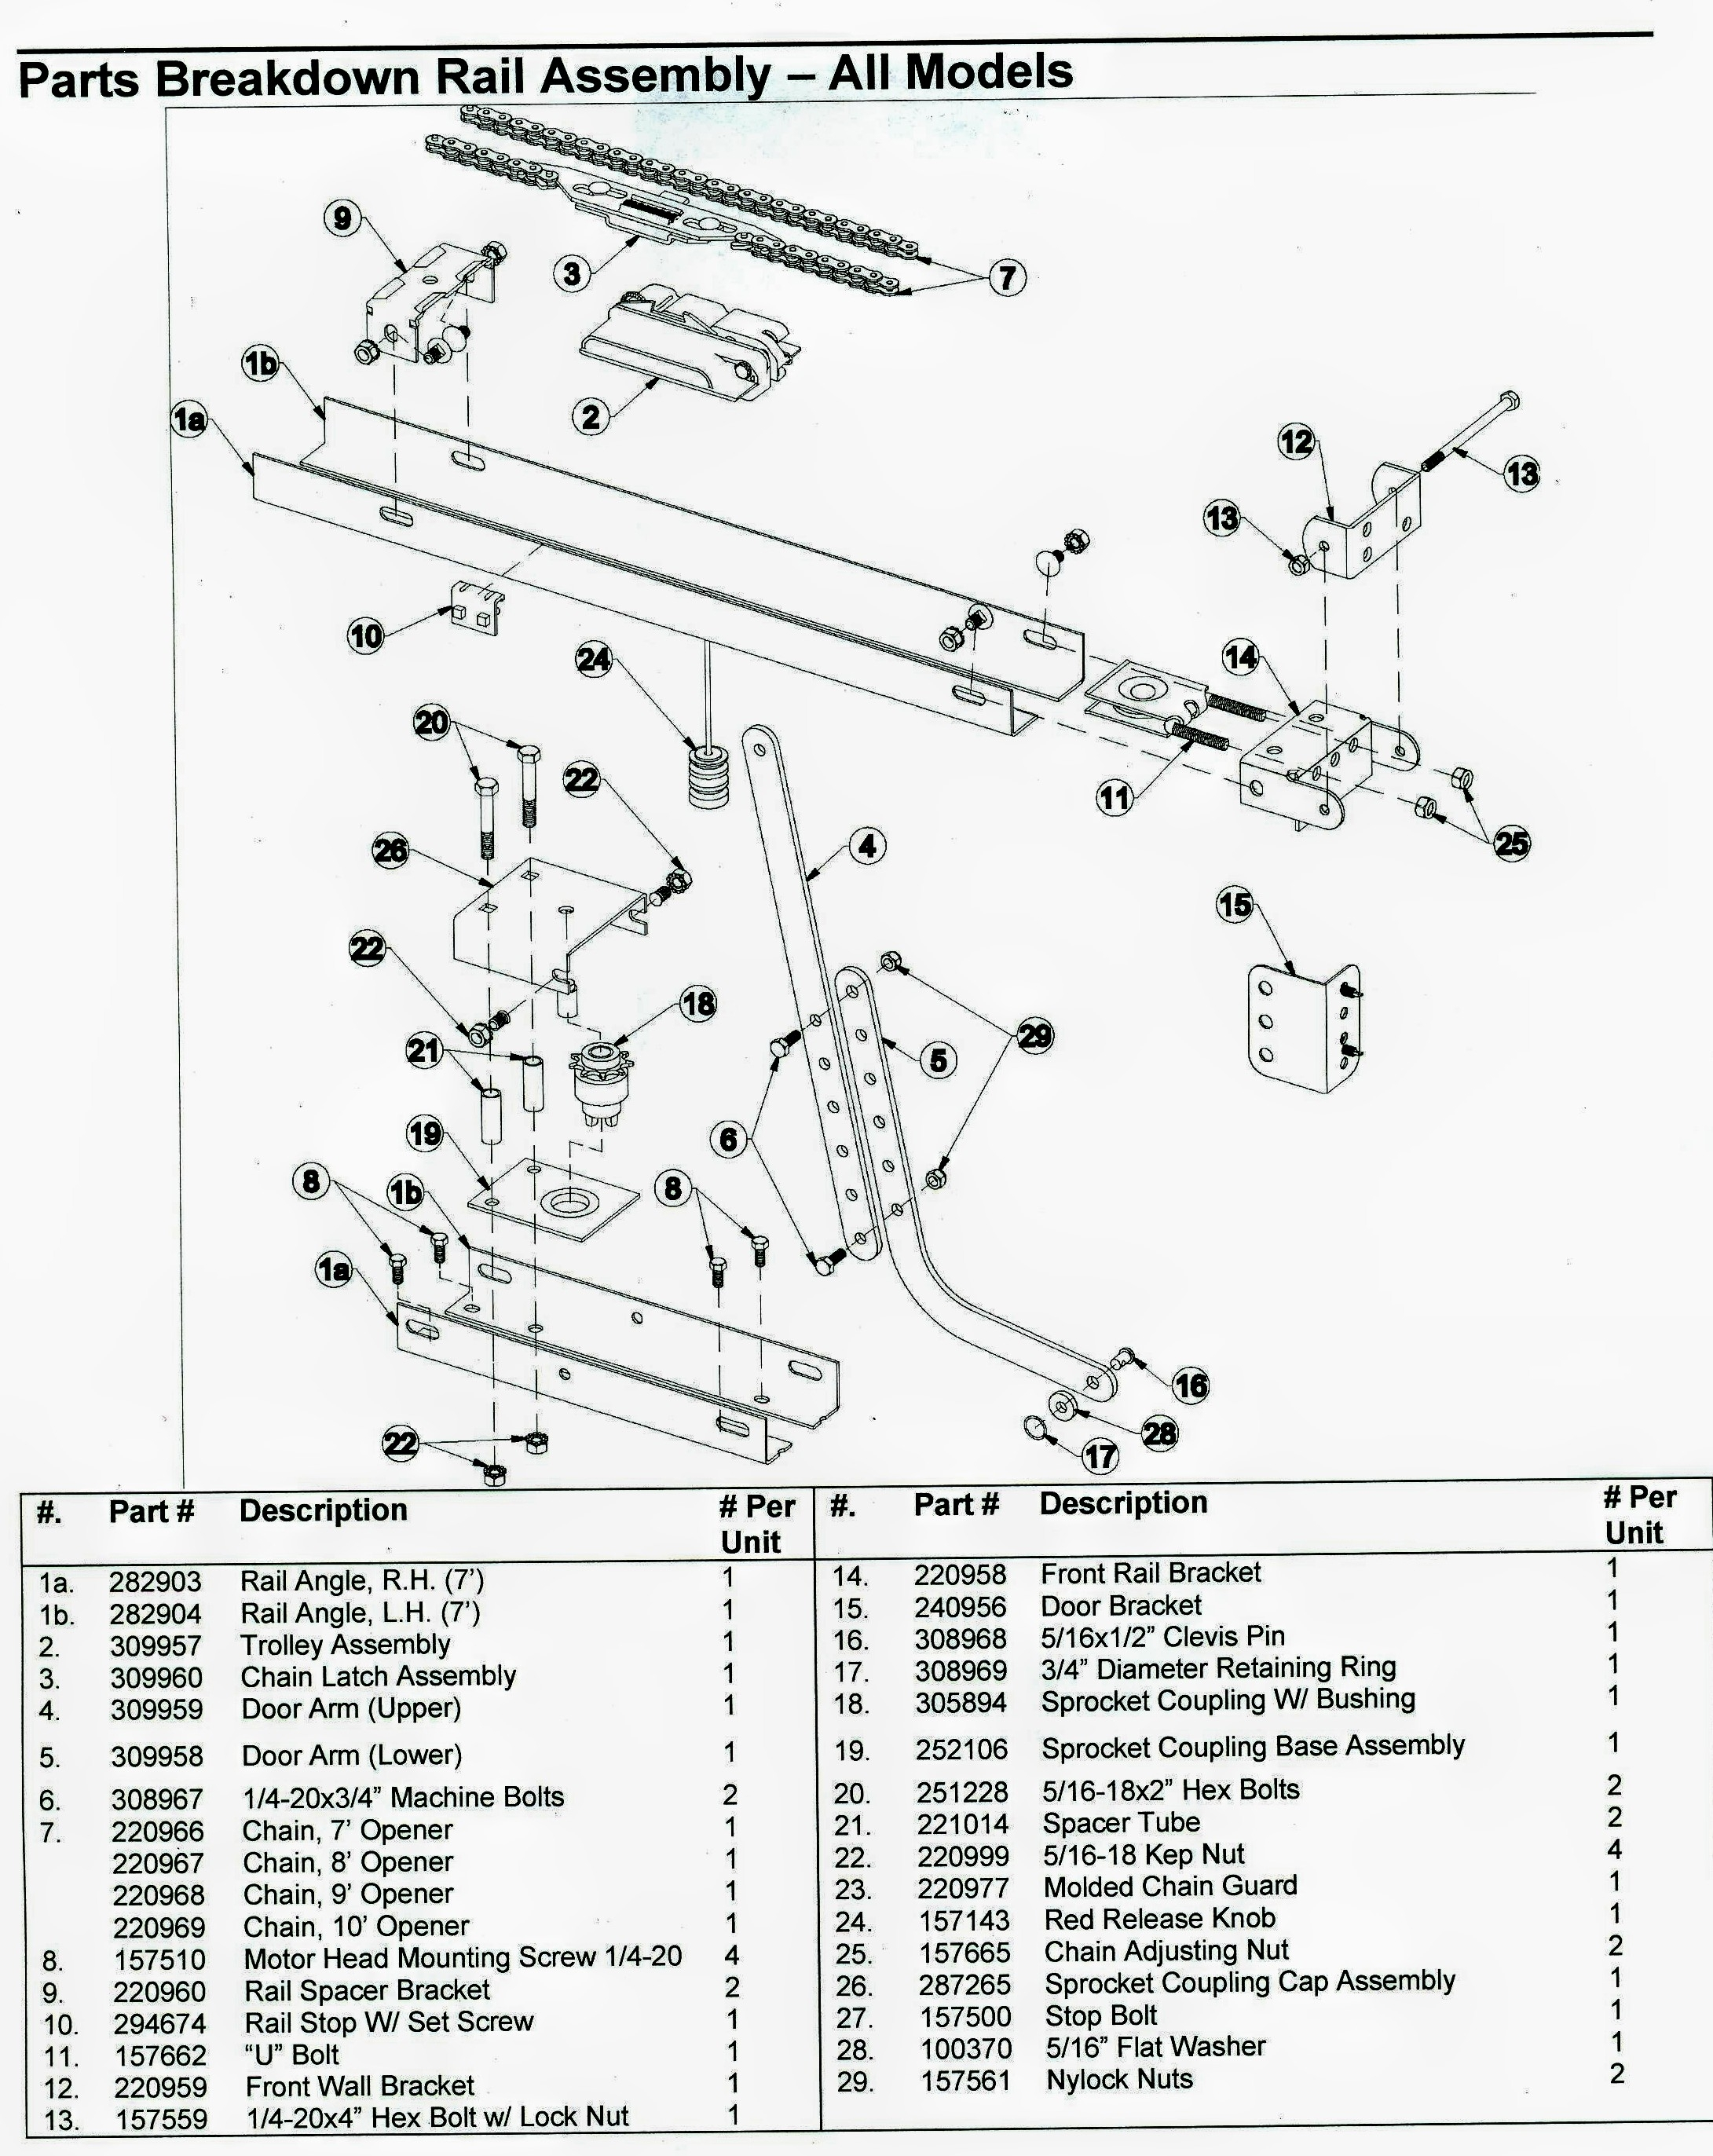 wiring diagram for liftmaster garage door opener on free throughout chamberlain garage door opener parts diagram wiring diagram for liftmaster garage door opener on free garage wiring diagram at gsmportal.co